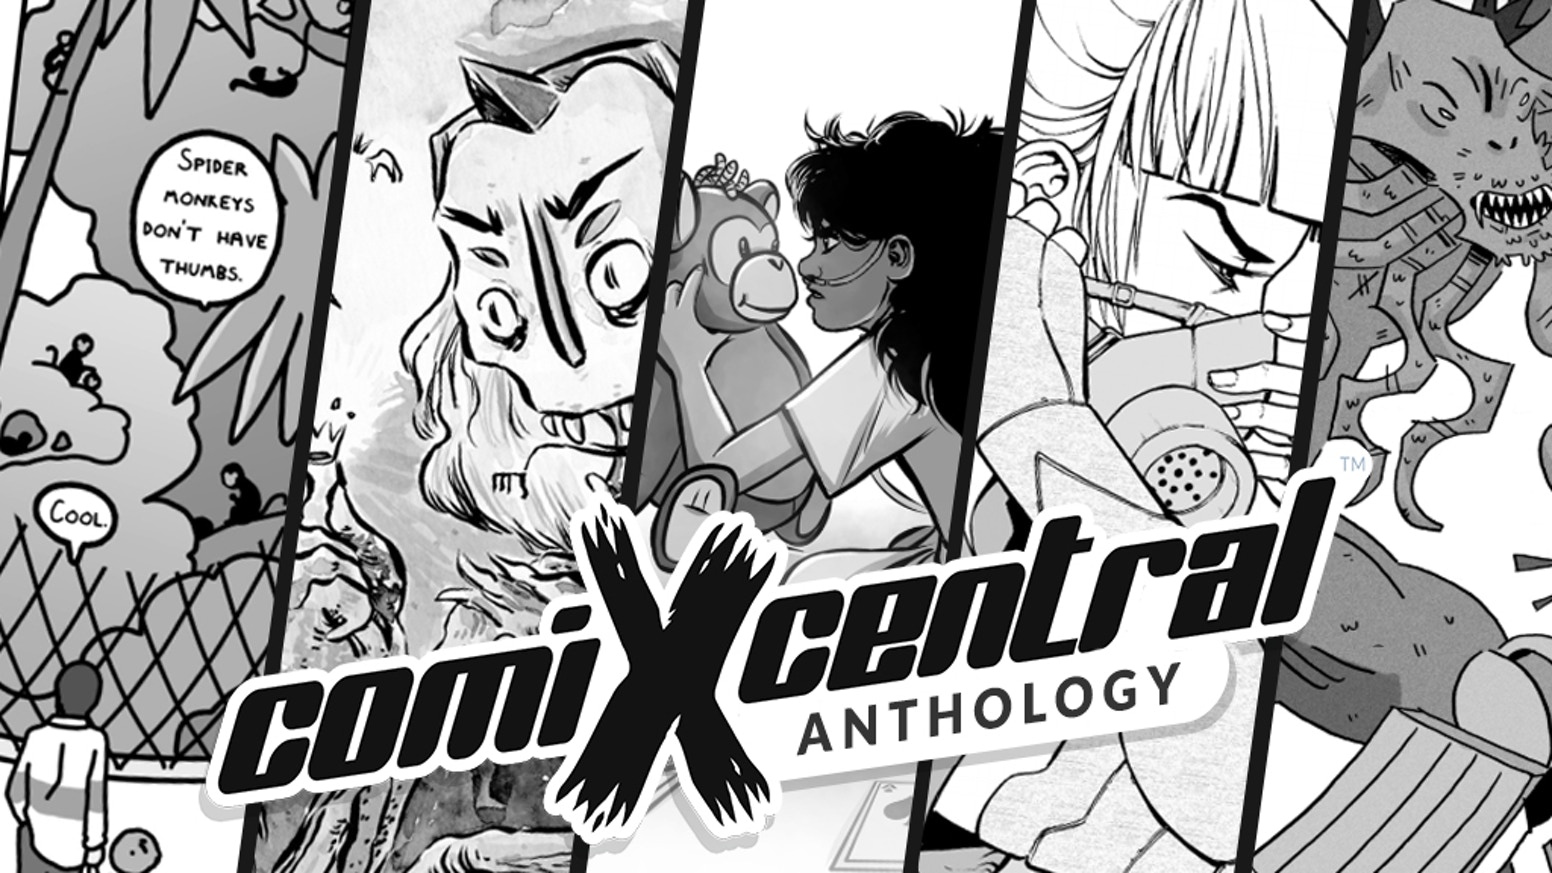 The Best of Indie: Anthology 2019 is a Comic anthology sponsored by ComixCentral containing over 100 pages of indie Comic greatness!